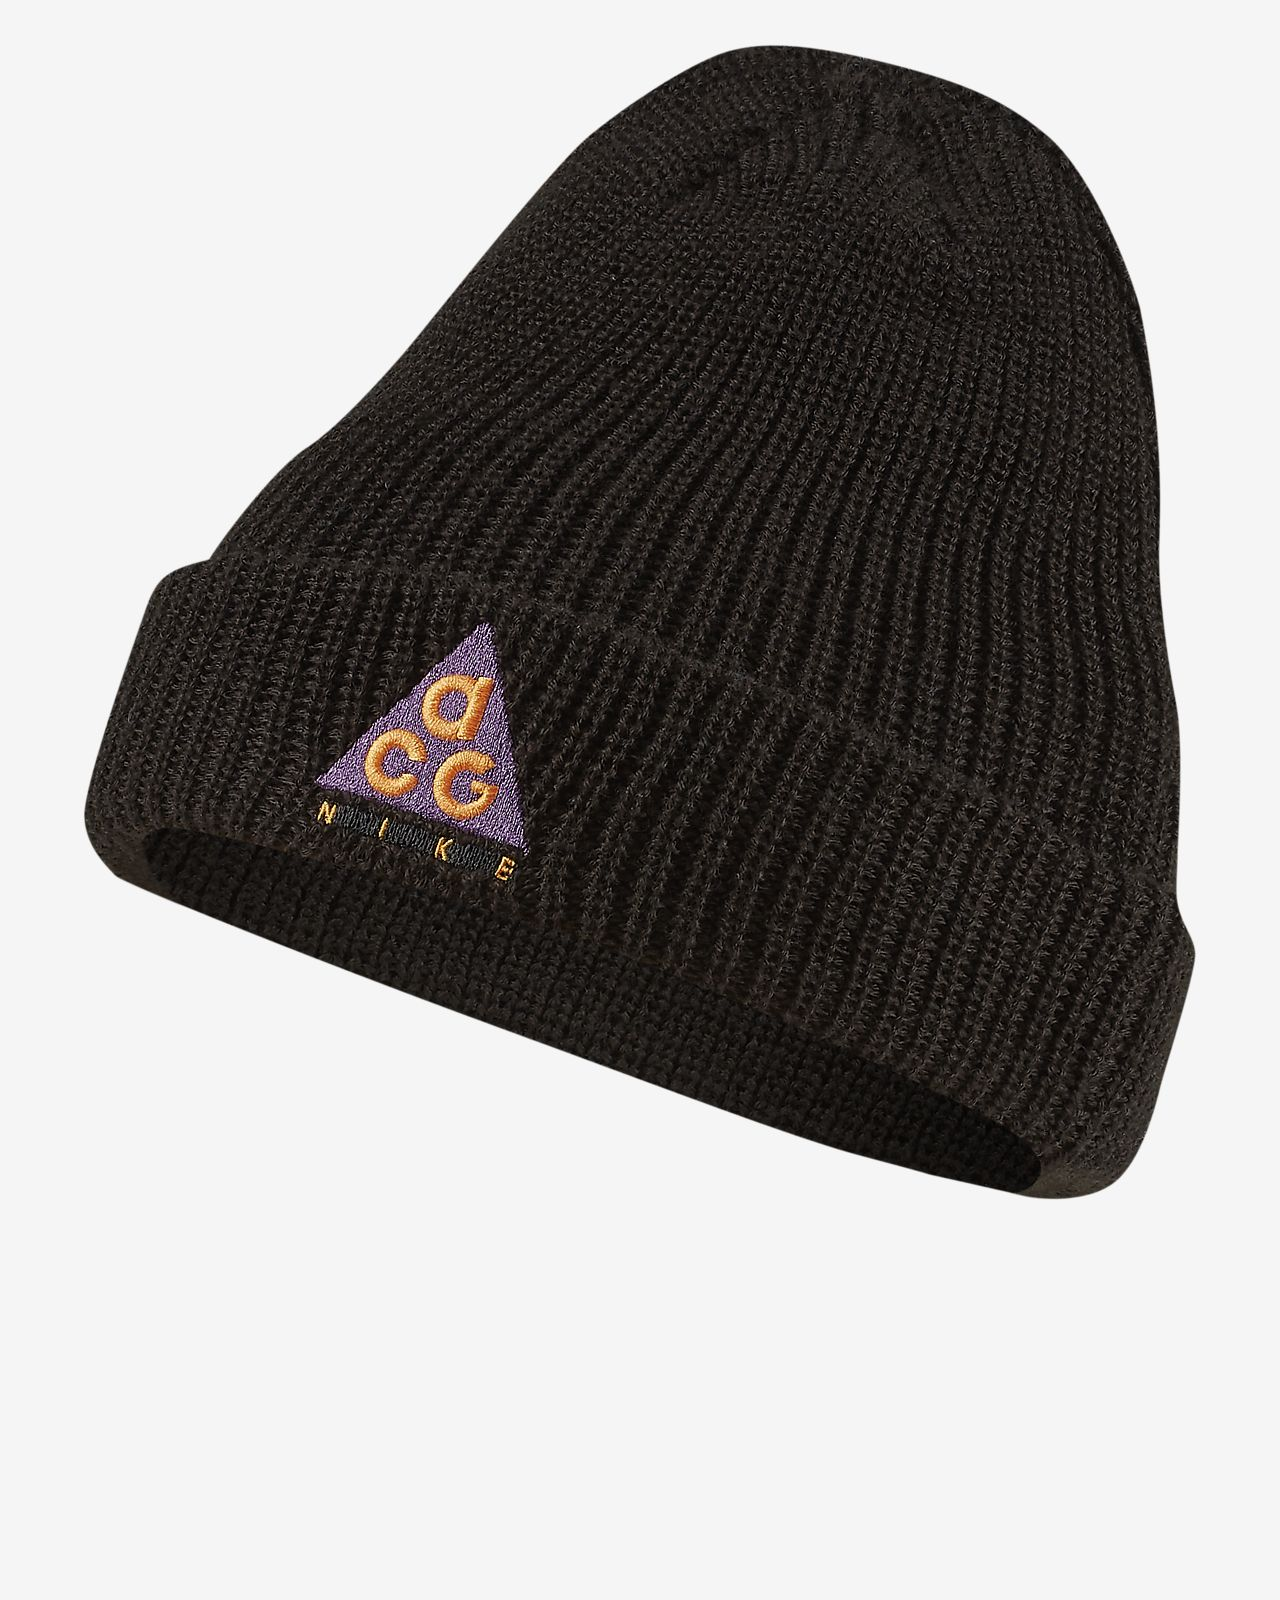 check out cf88f 0340c Low Resolution Nike ACG Beanie Nike ACG Beanie